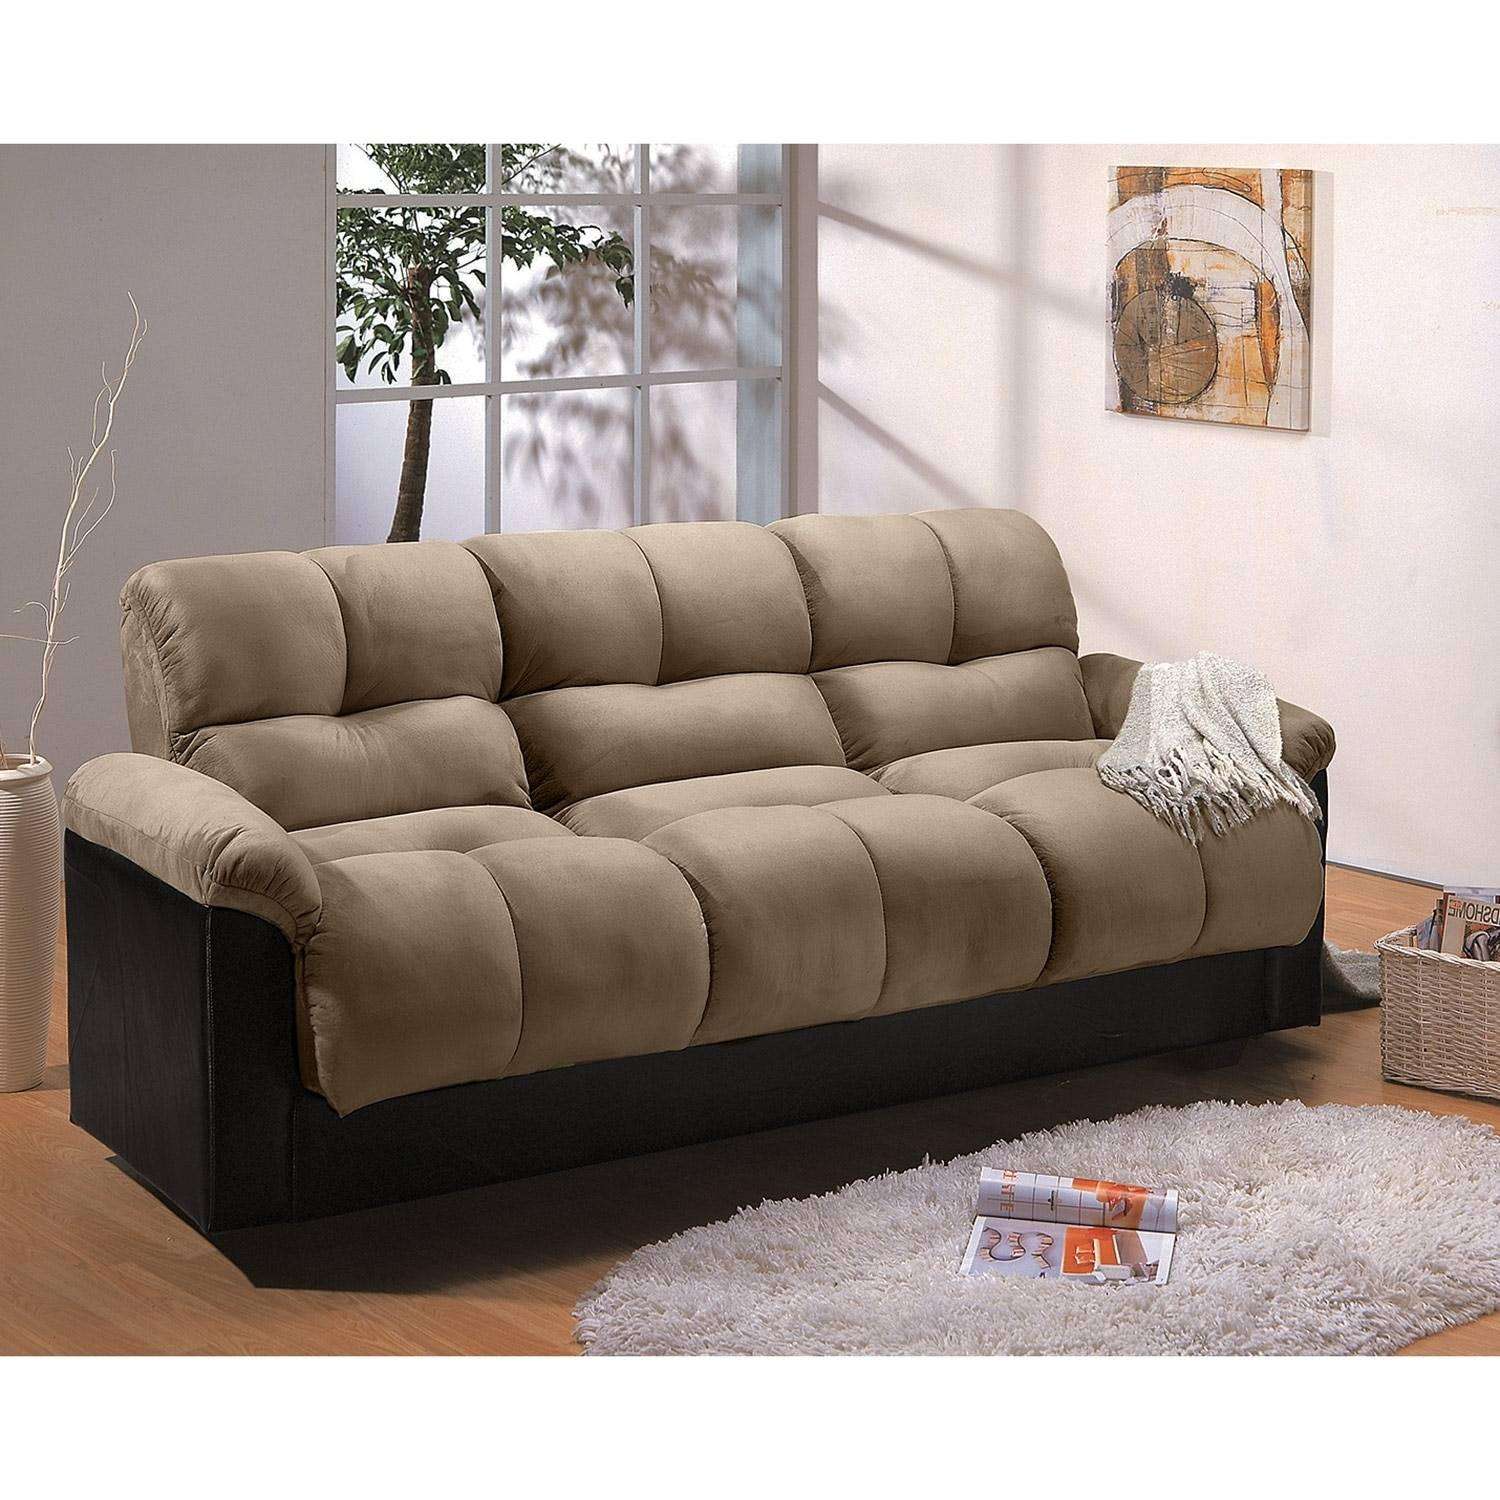 Ara Futon Sofa Bed With Storage - Hazelnut | Value City Furniture intended for Fulton Sofa Beds (Image 1 of 30)